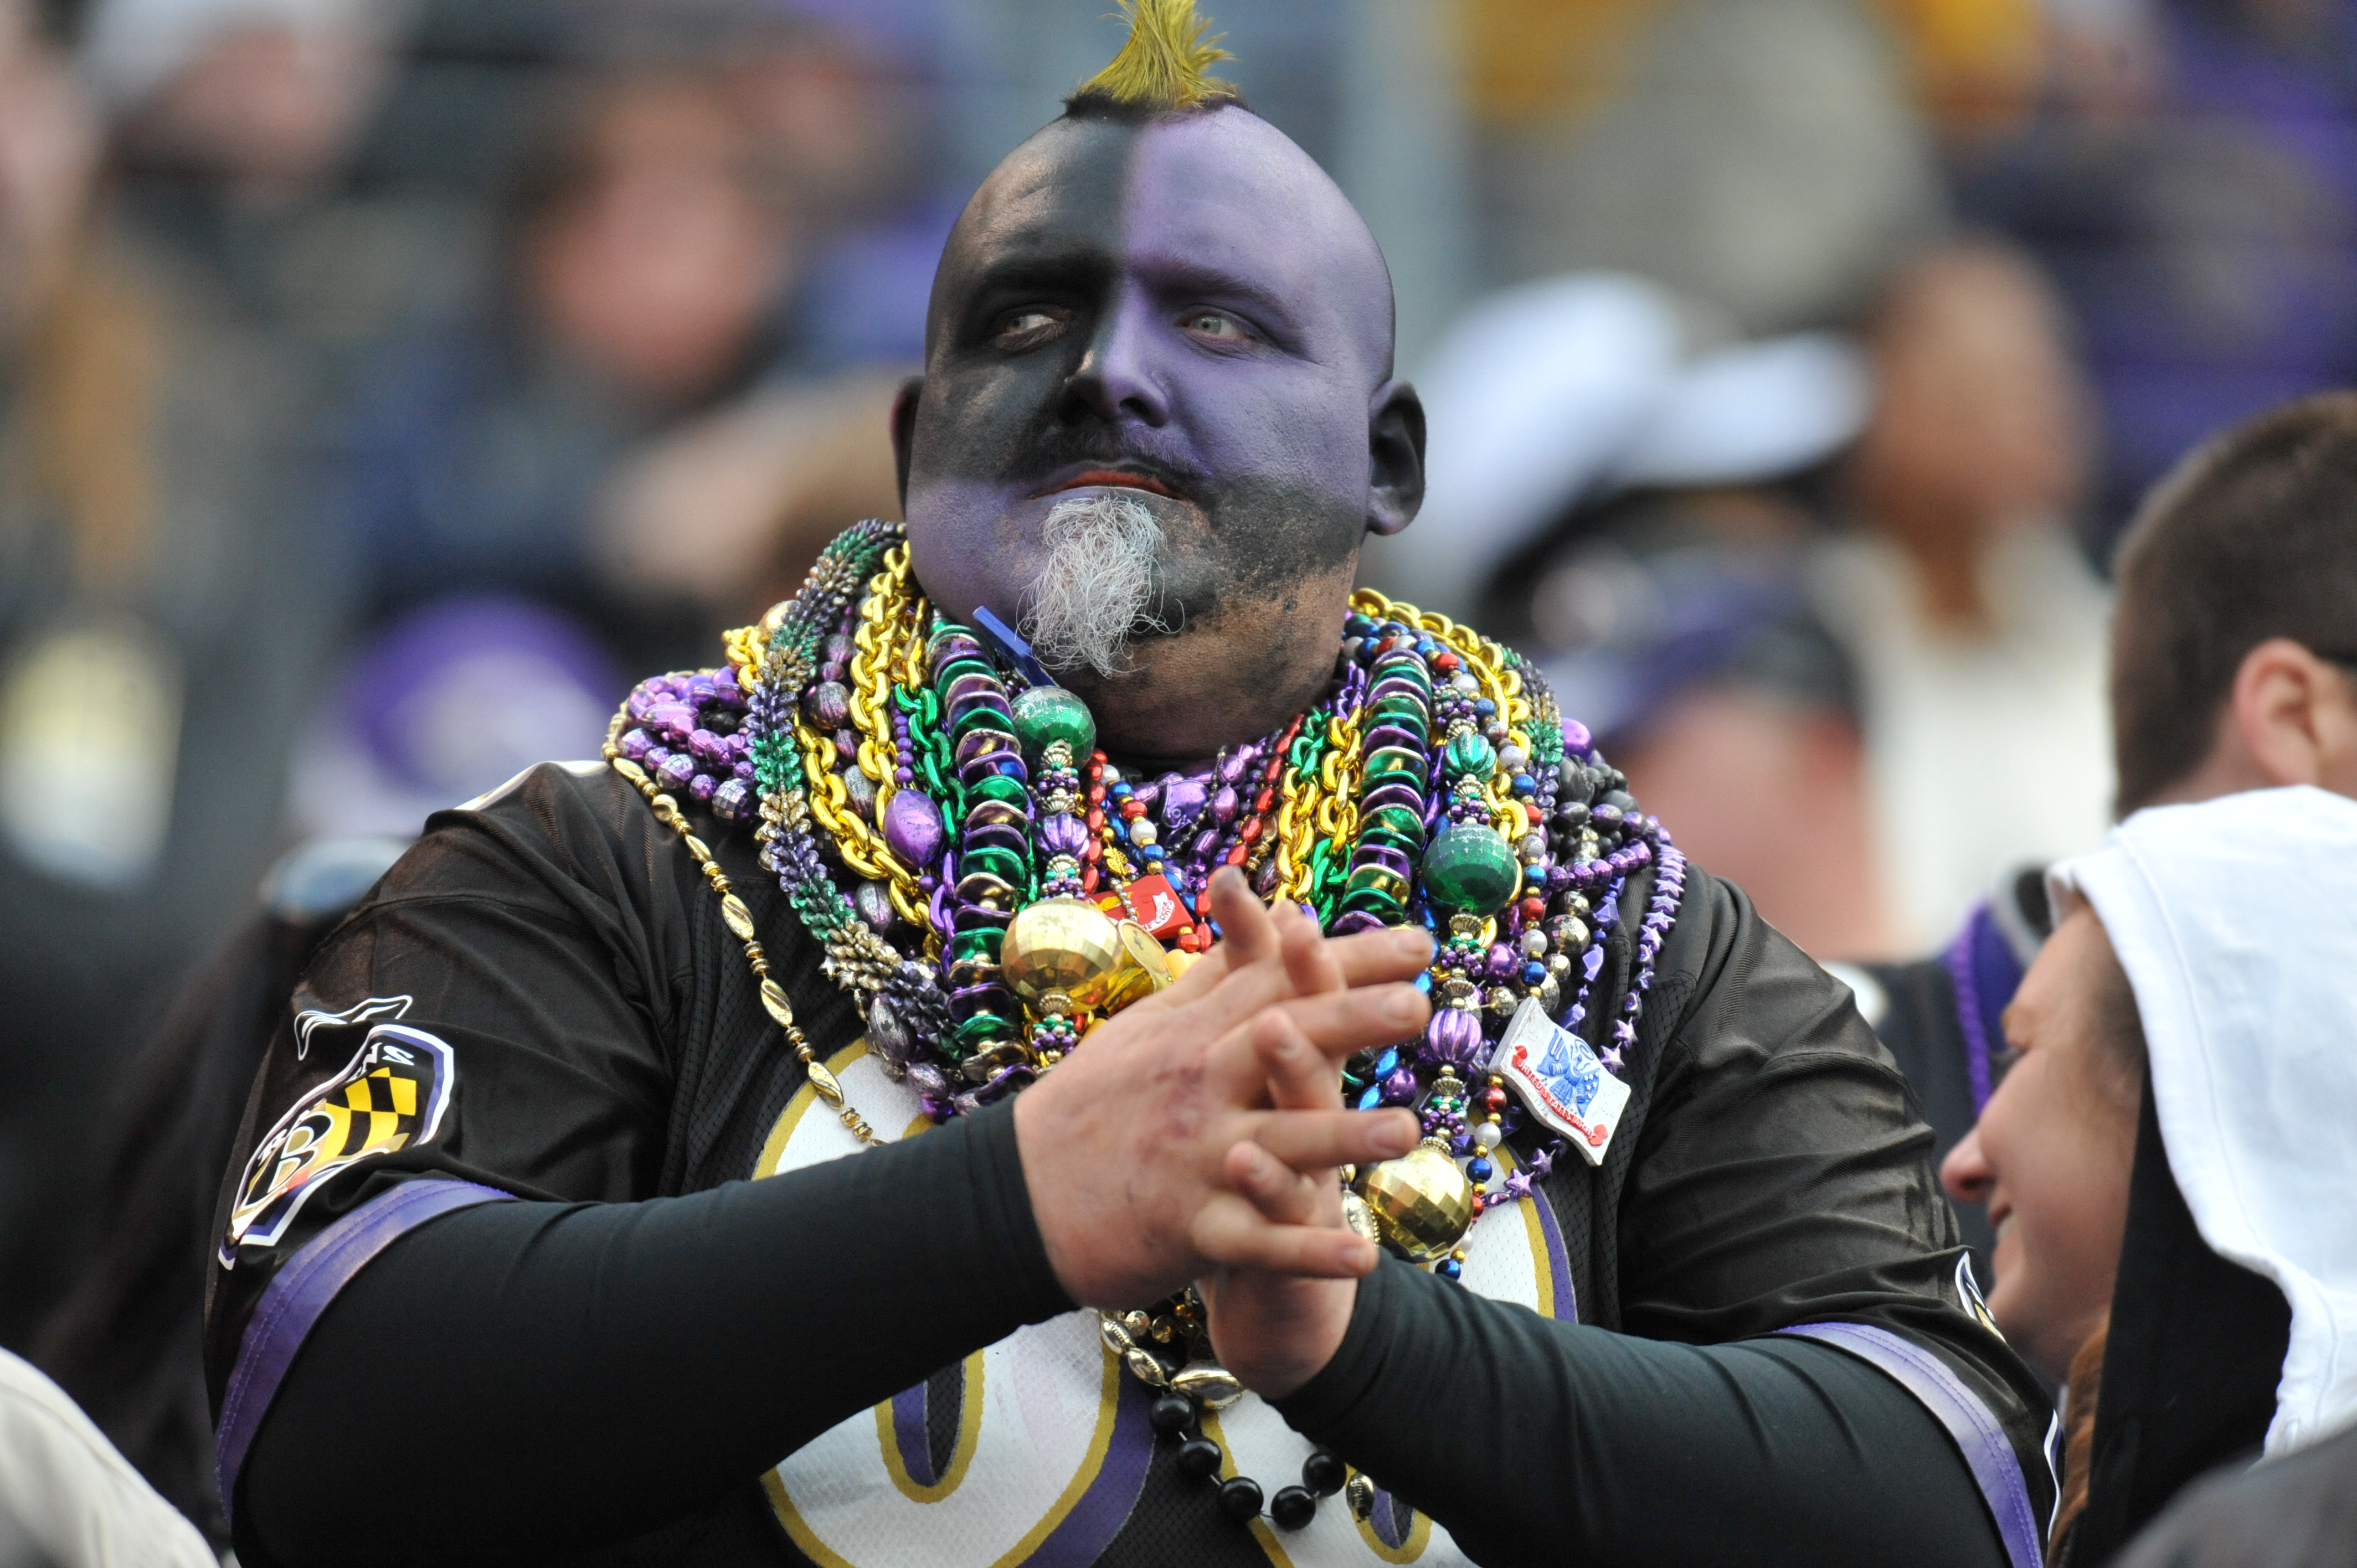 BALTIMORE, MD - NOVEMBER 7:  A fan of the Baltimore Ravens cheers against the Miami Dolphins at M&T Bank Stadium on November 7, 2010 in Baltimore, Maryland. The Ravens defeated the Dolphins 26-10. (Photo by Larry French/Getty Images)